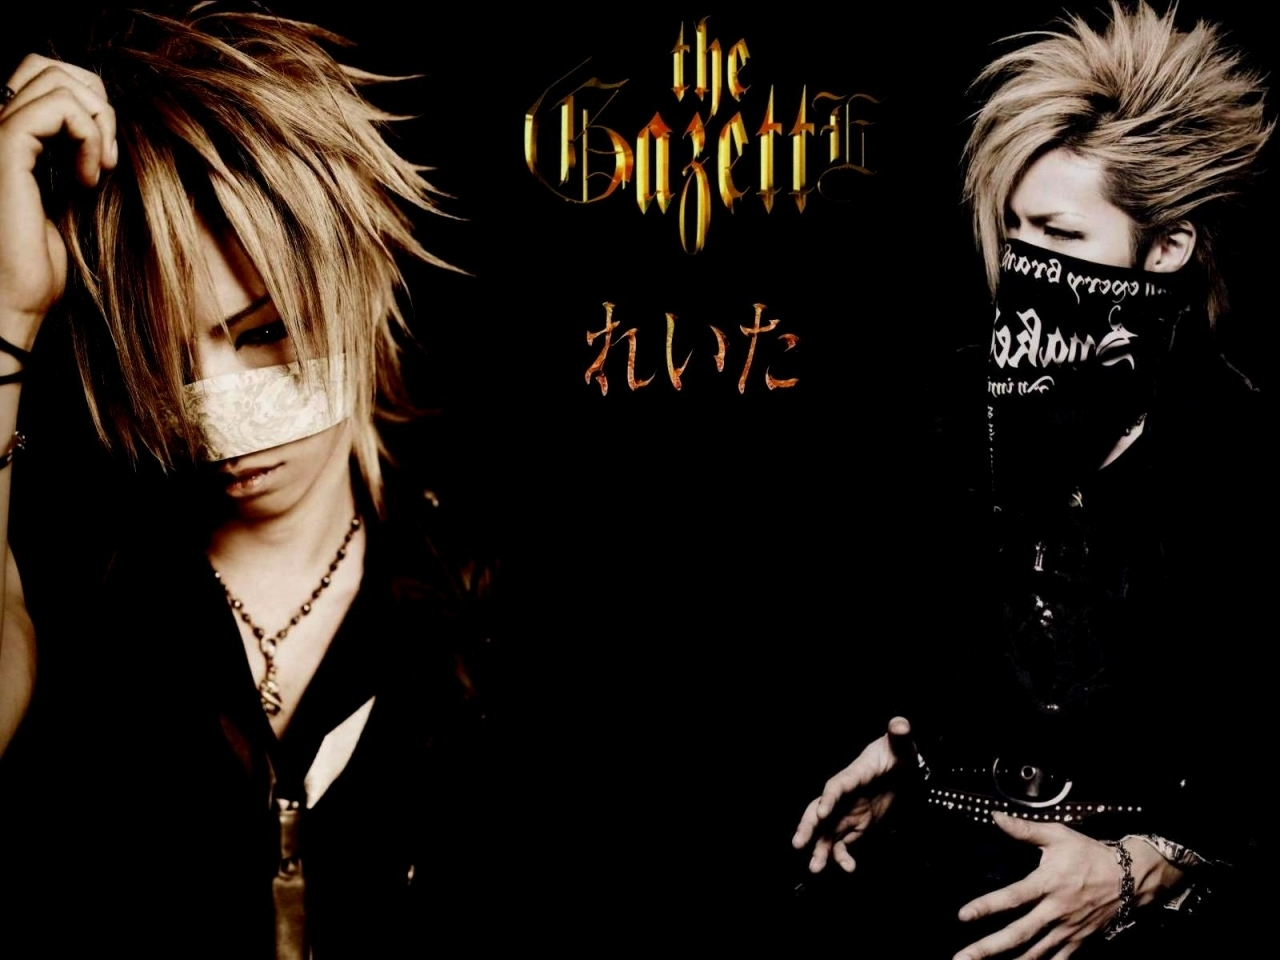 http://images2.fanpop.com/image/photos/10700000/reita-the-gazette-the-gazette-10726958-1280-960.jpg